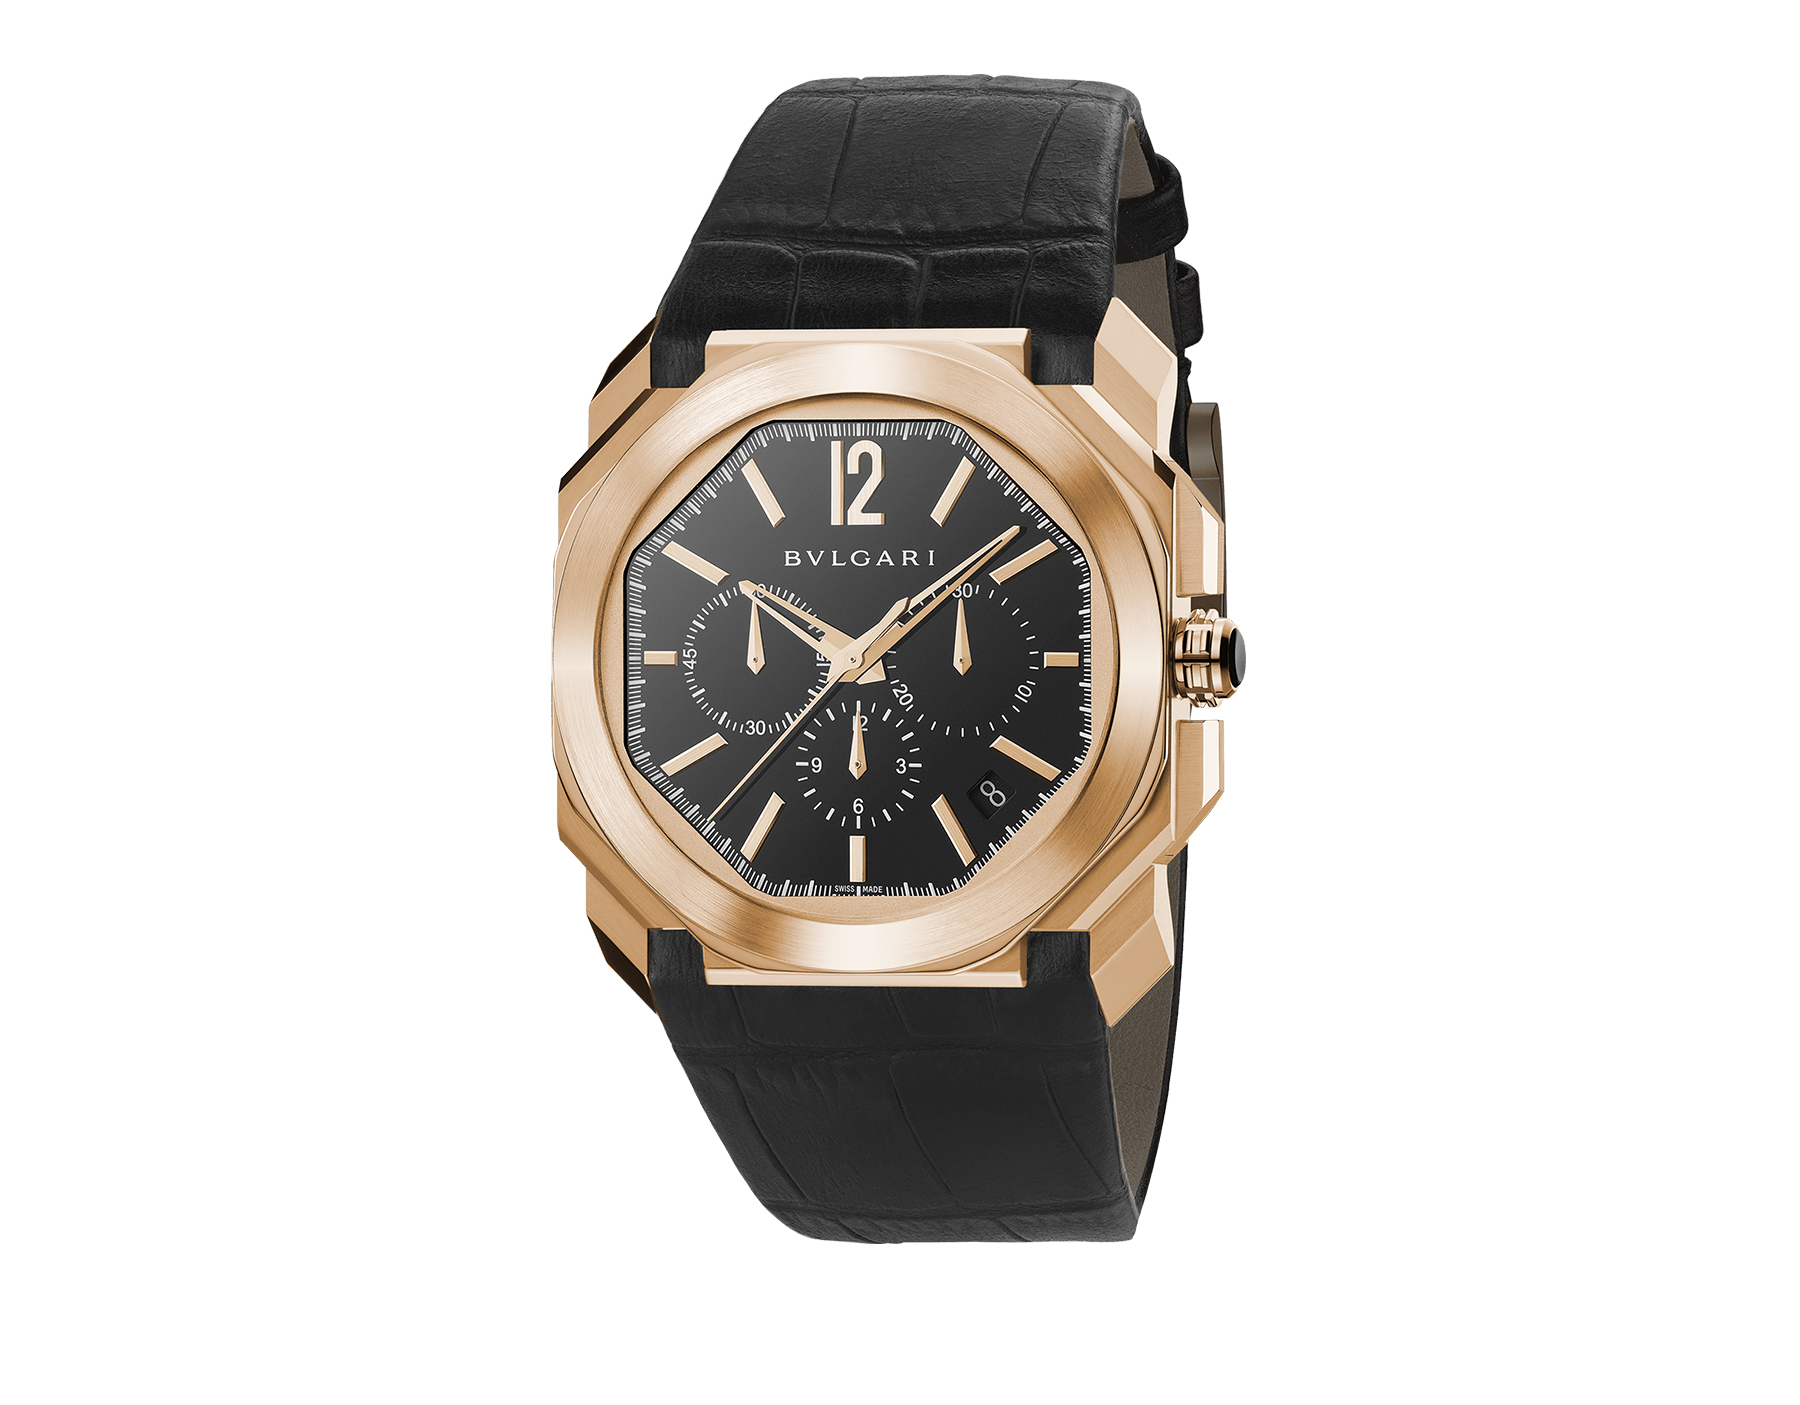 Octo watch with mechanical manufacture movement, high-frequency chronograph, automatic winding and date, 18 kt rose gold case, black lacquered dial and black alligator bracelet. 102115 image 1